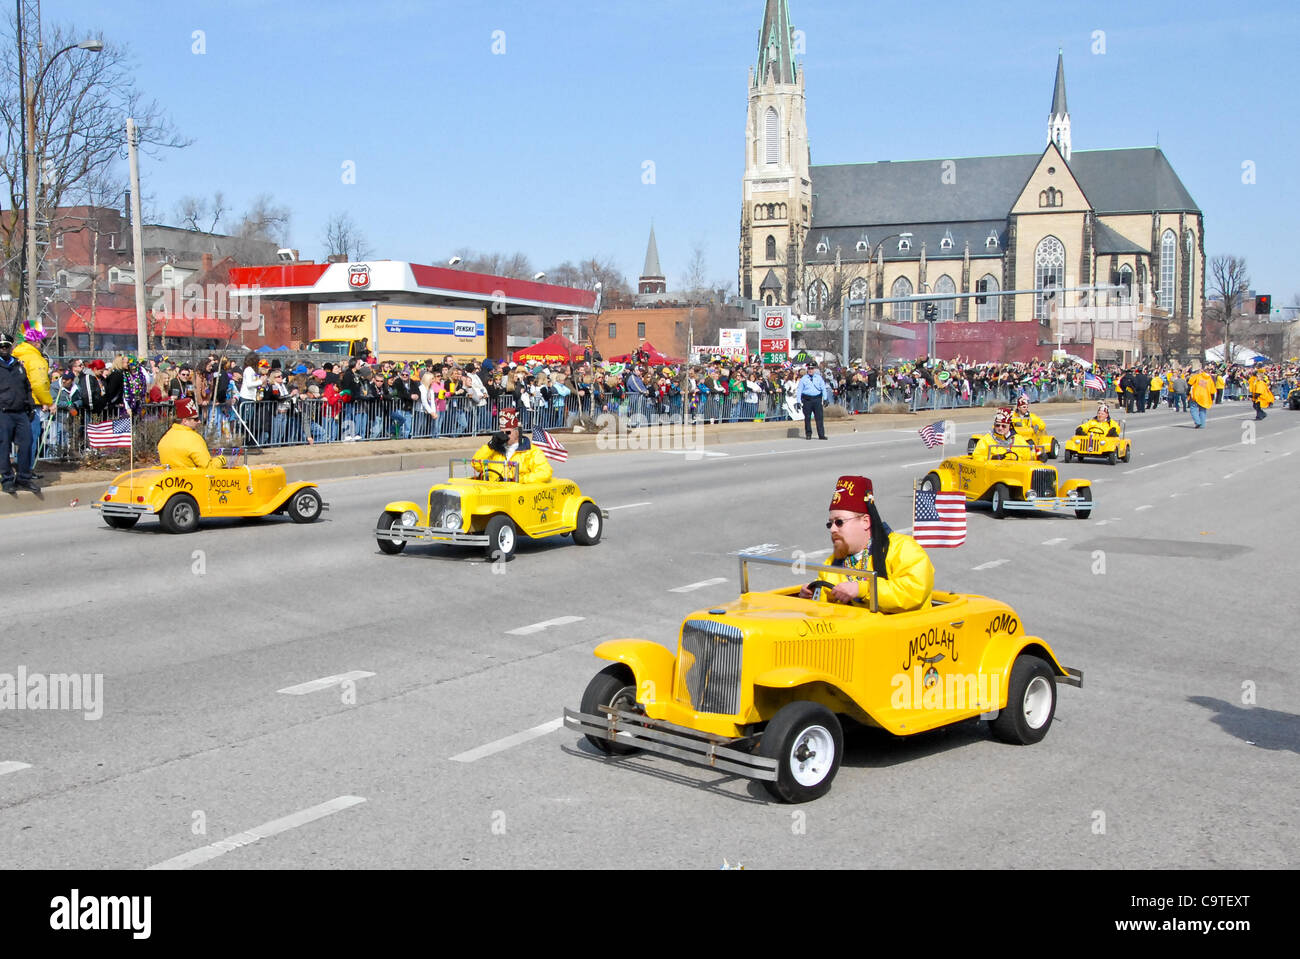 Feb. 18, 2012 - Saint Louis, Missouri, U.S - The Moolah Shriners drive their crowd favorite mini cars during the - Stock Image